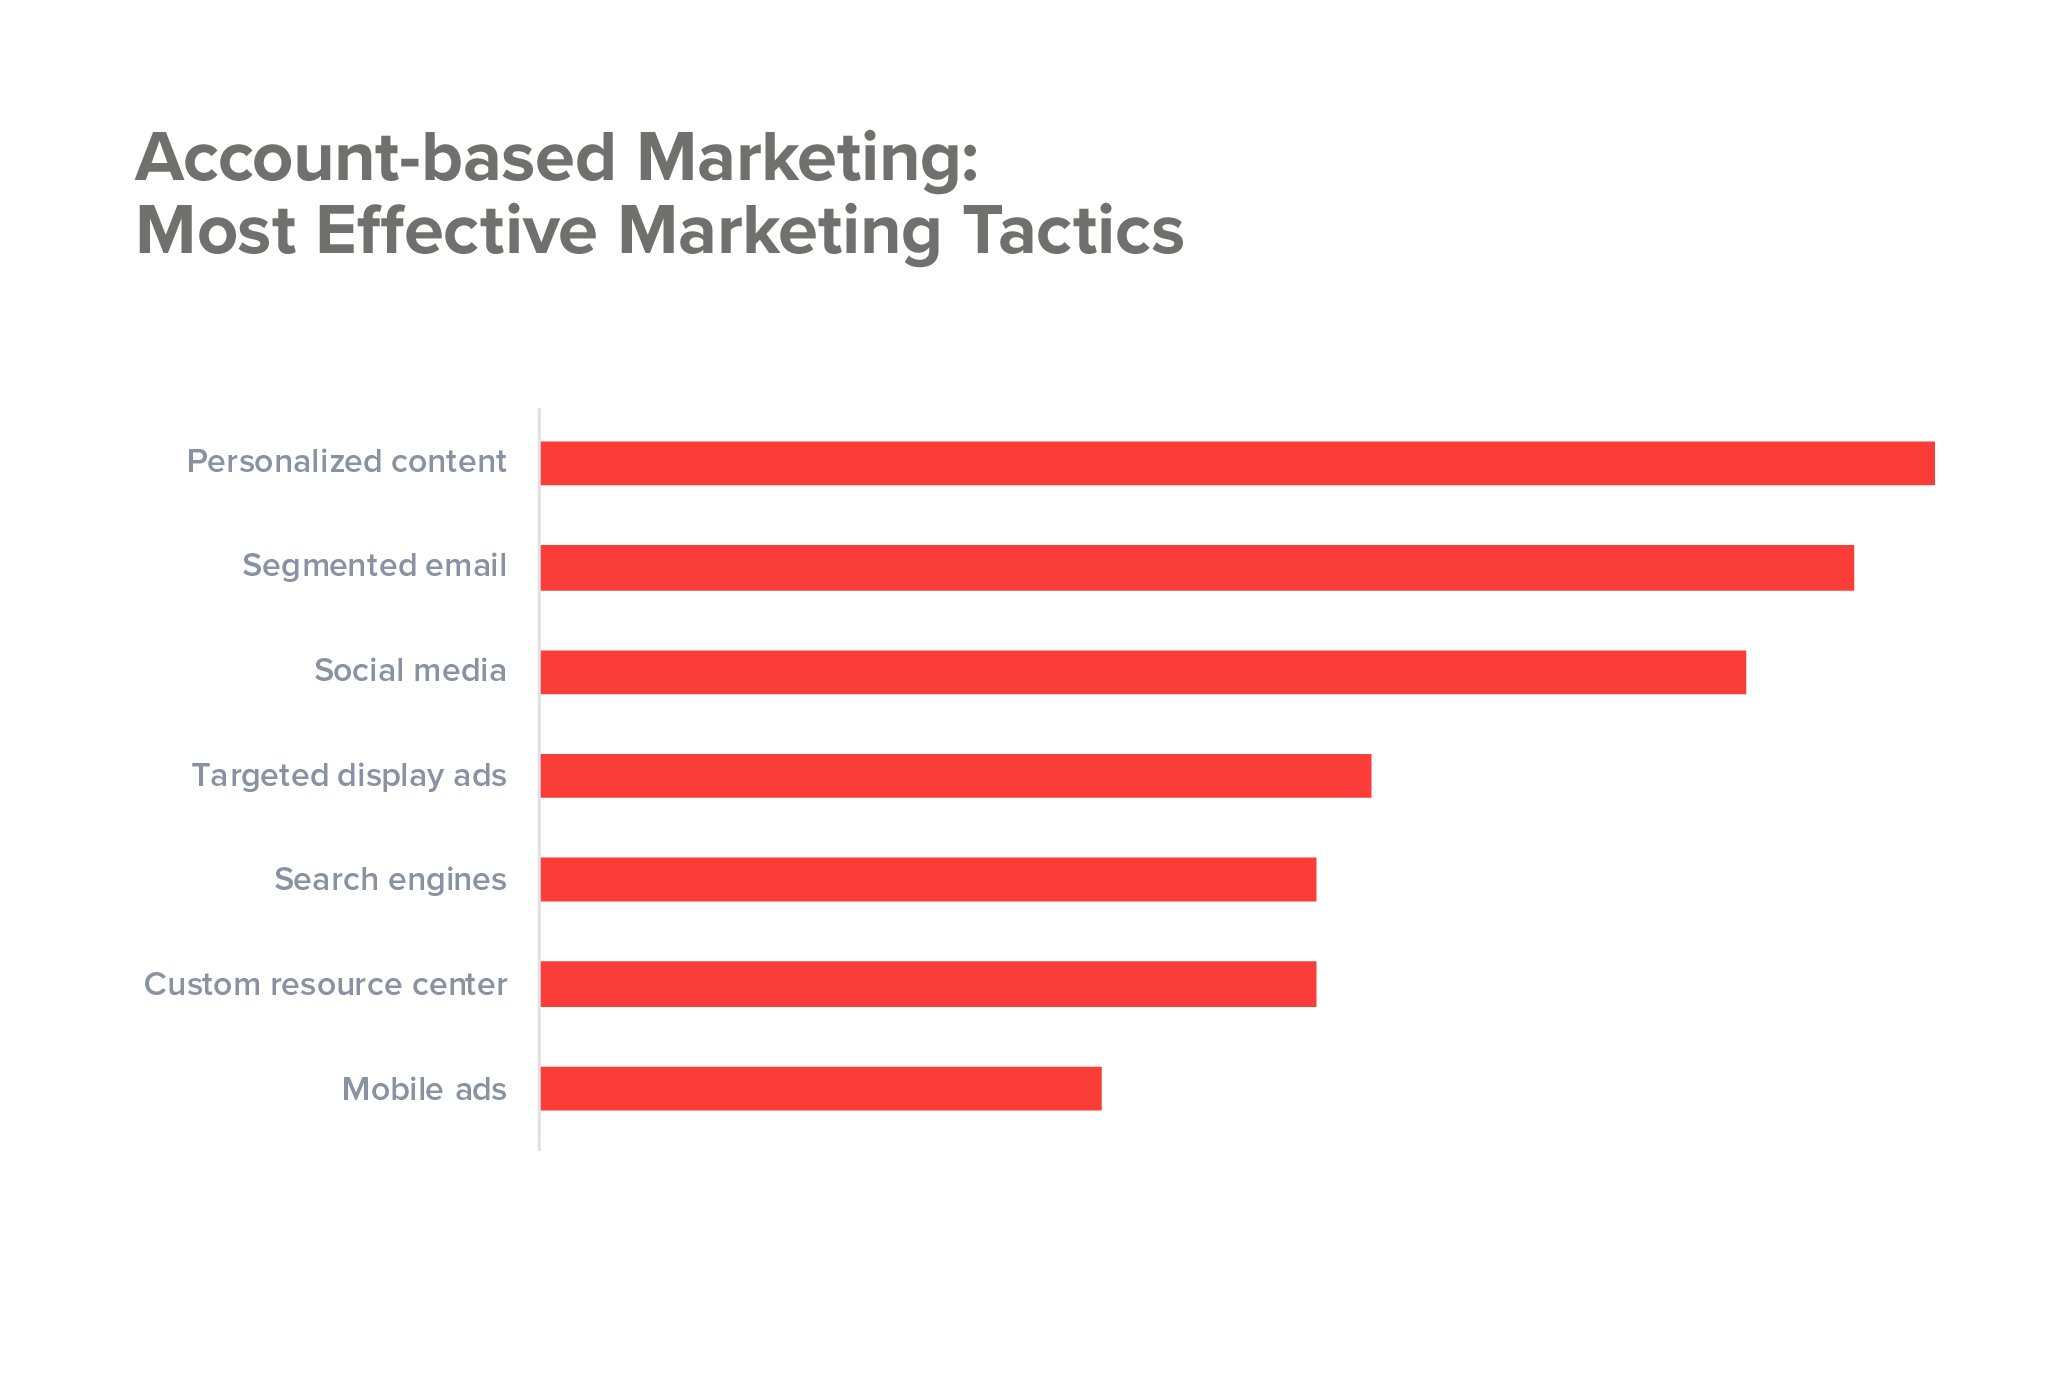 Most effective marketing tactics for ABM campaign